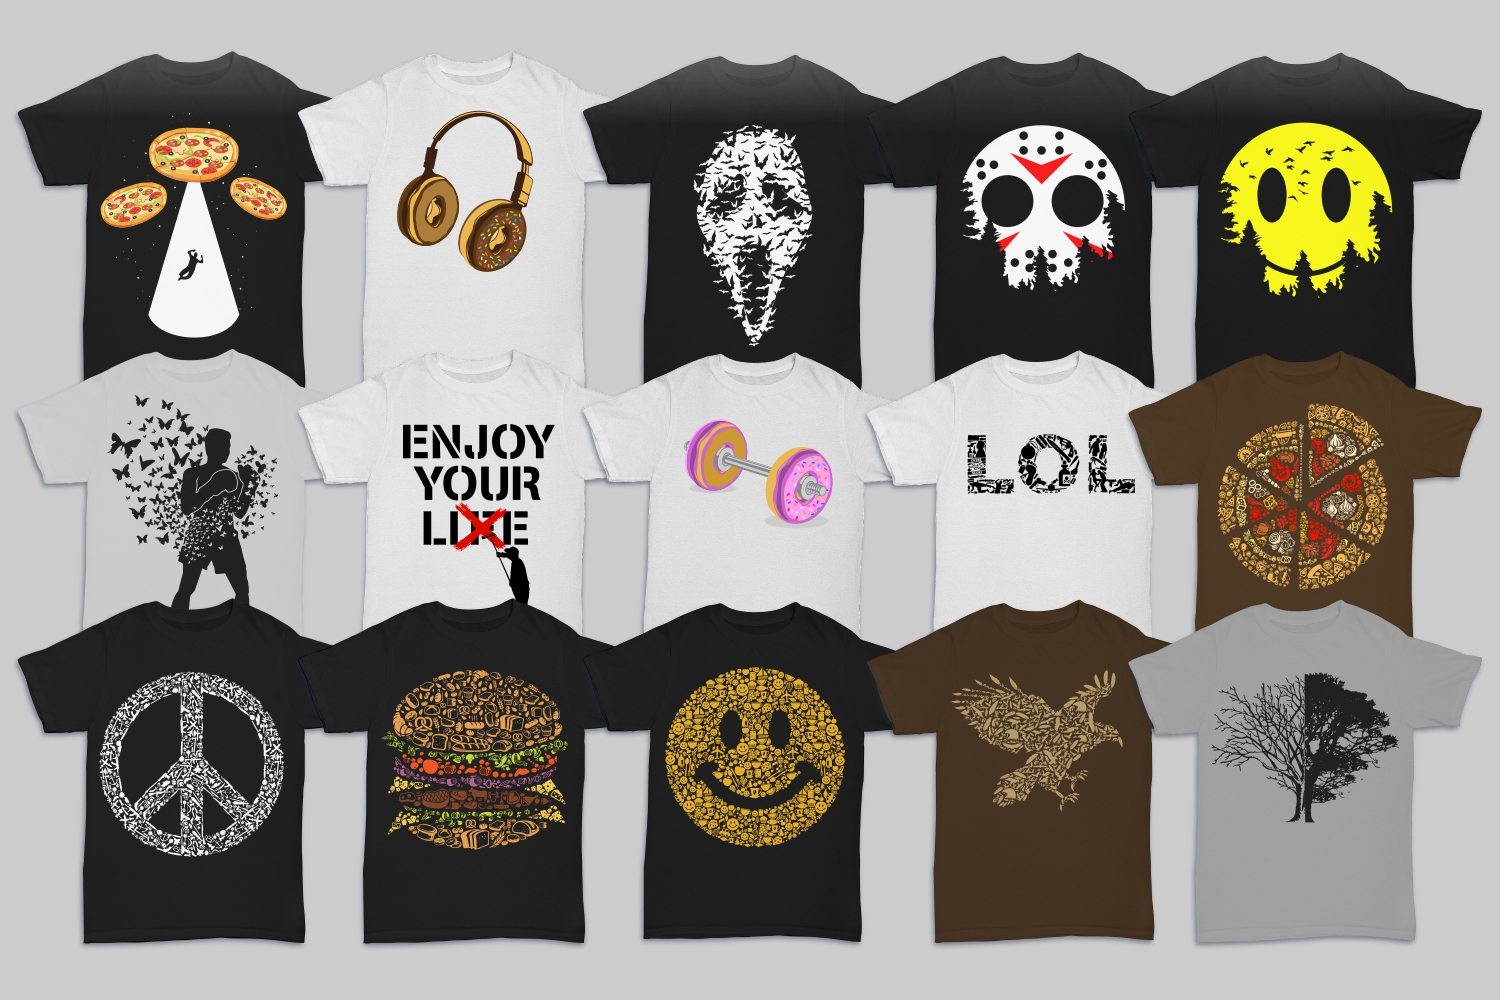 Tshirt Designs Mega Bundle Pack 1 + Pack 2 example image 6